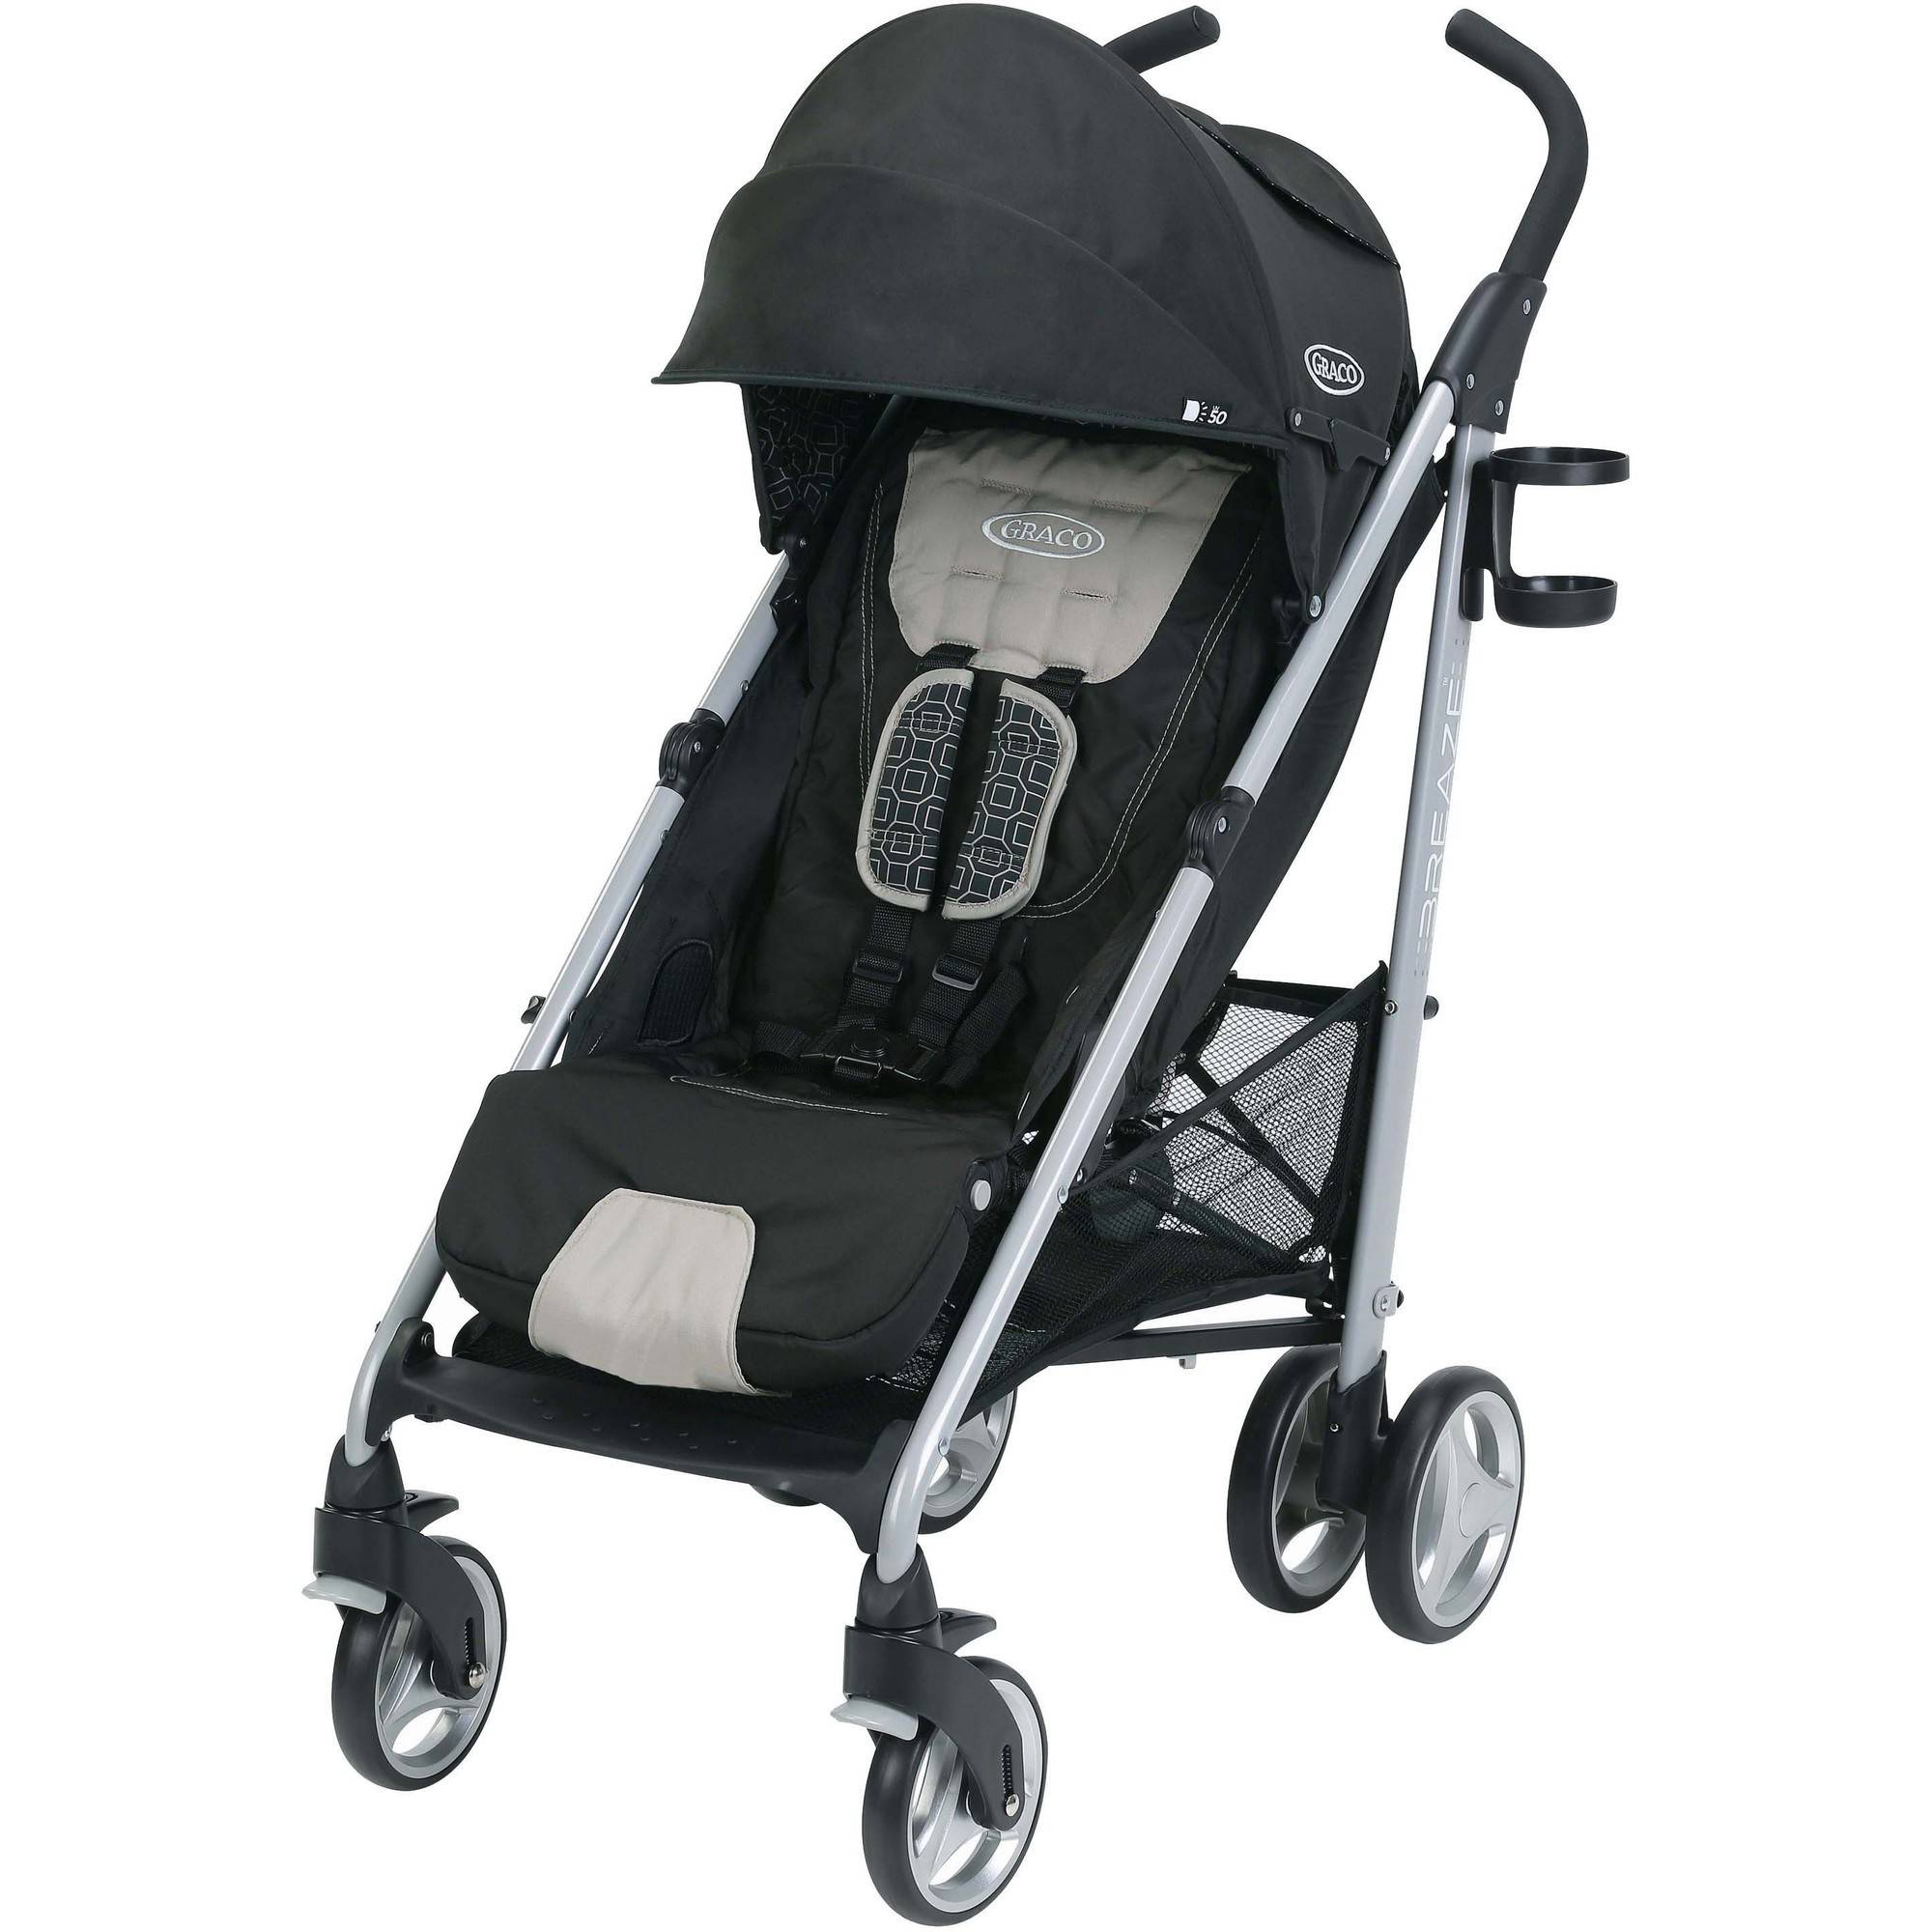 Graco Breaze Click Connect Umbrella Stroller, Pierce by Graco